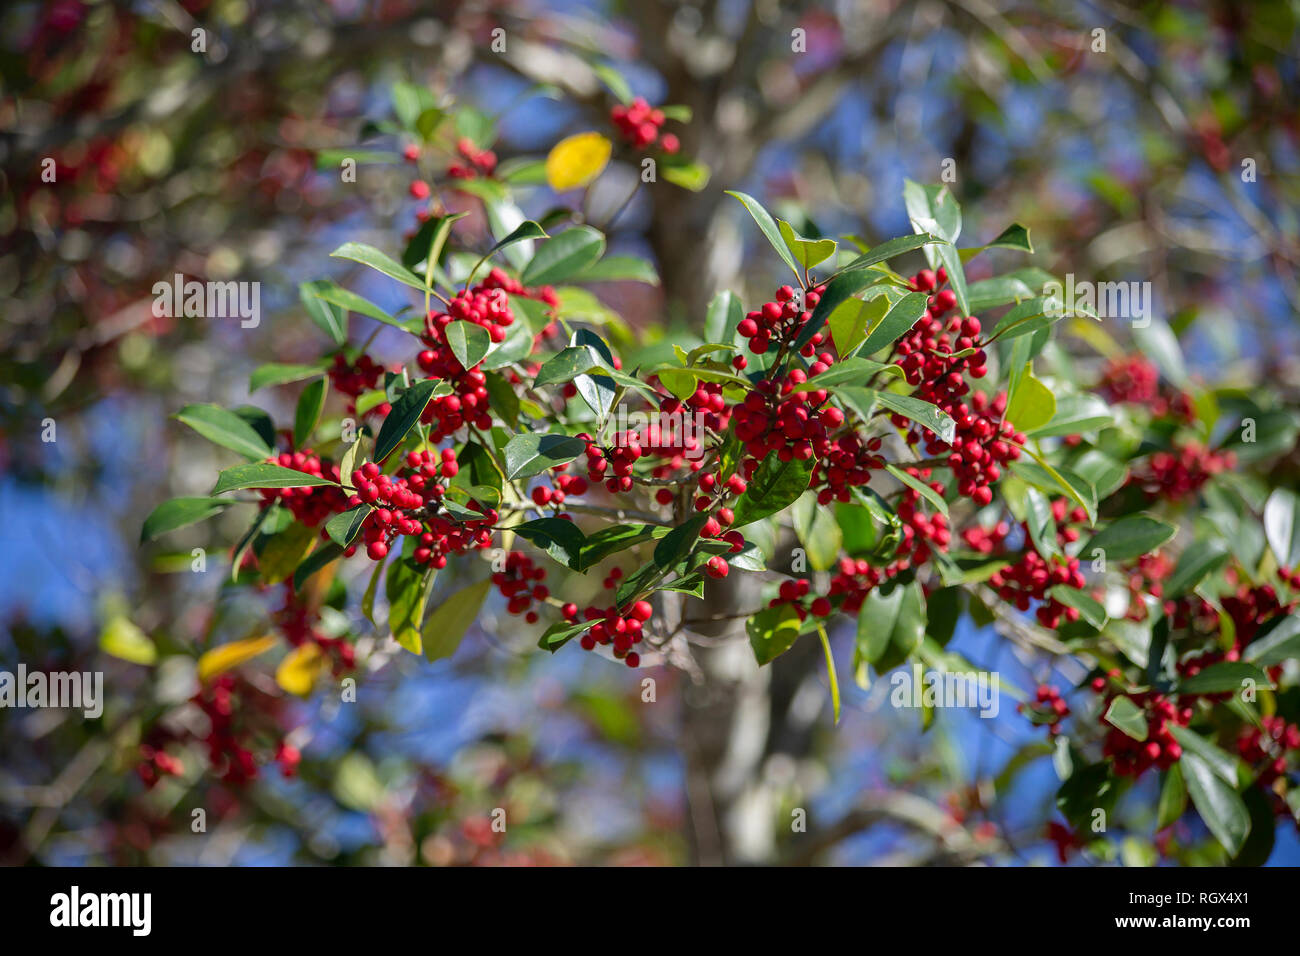 Small Red Berries Growing On A Bush In Nature Stock Photo